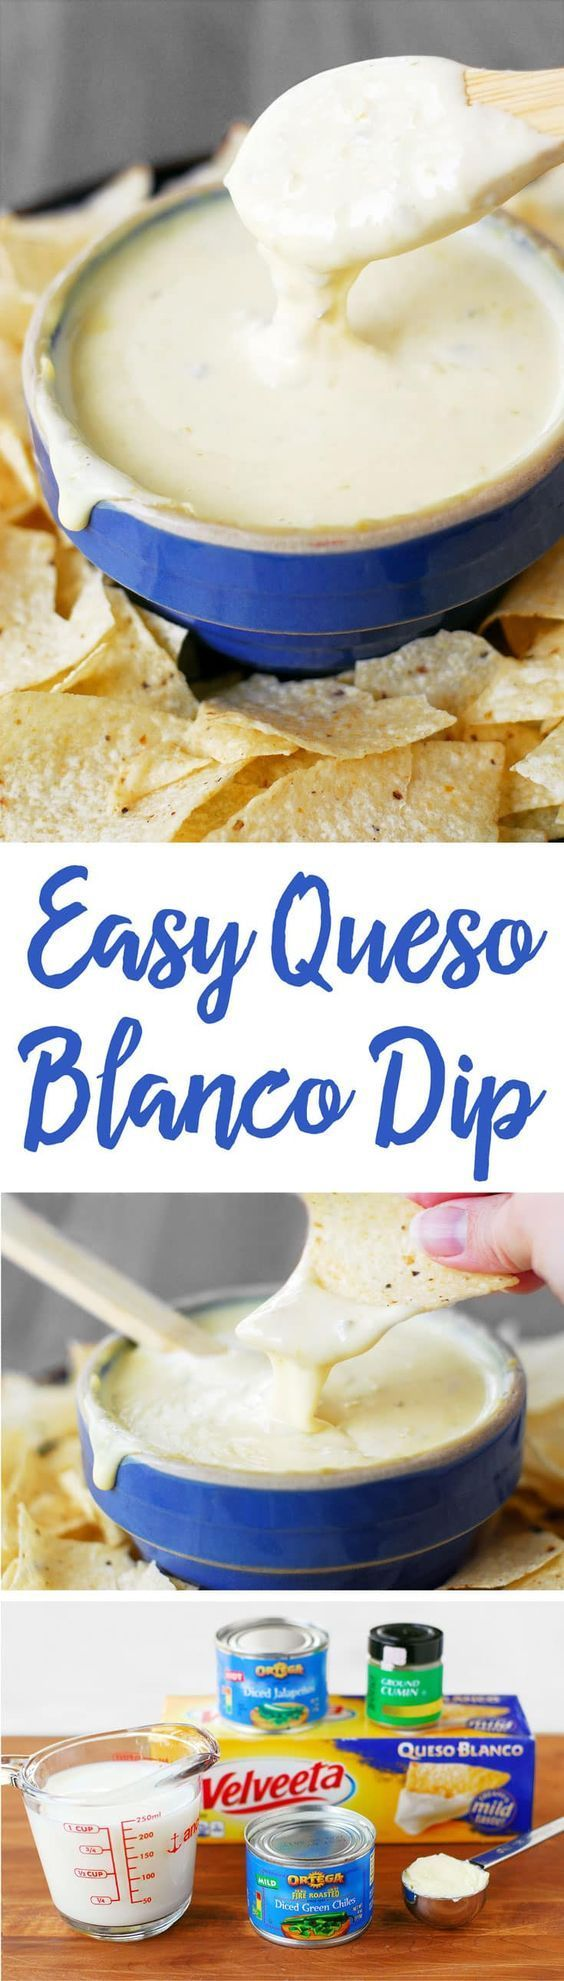 This Easy Queso Blanco Recipe is a quick way to make white cheese dip using Velveeta and peppers. Serve with chips as a taco side dish or a party appetizer! #tacosidedishes